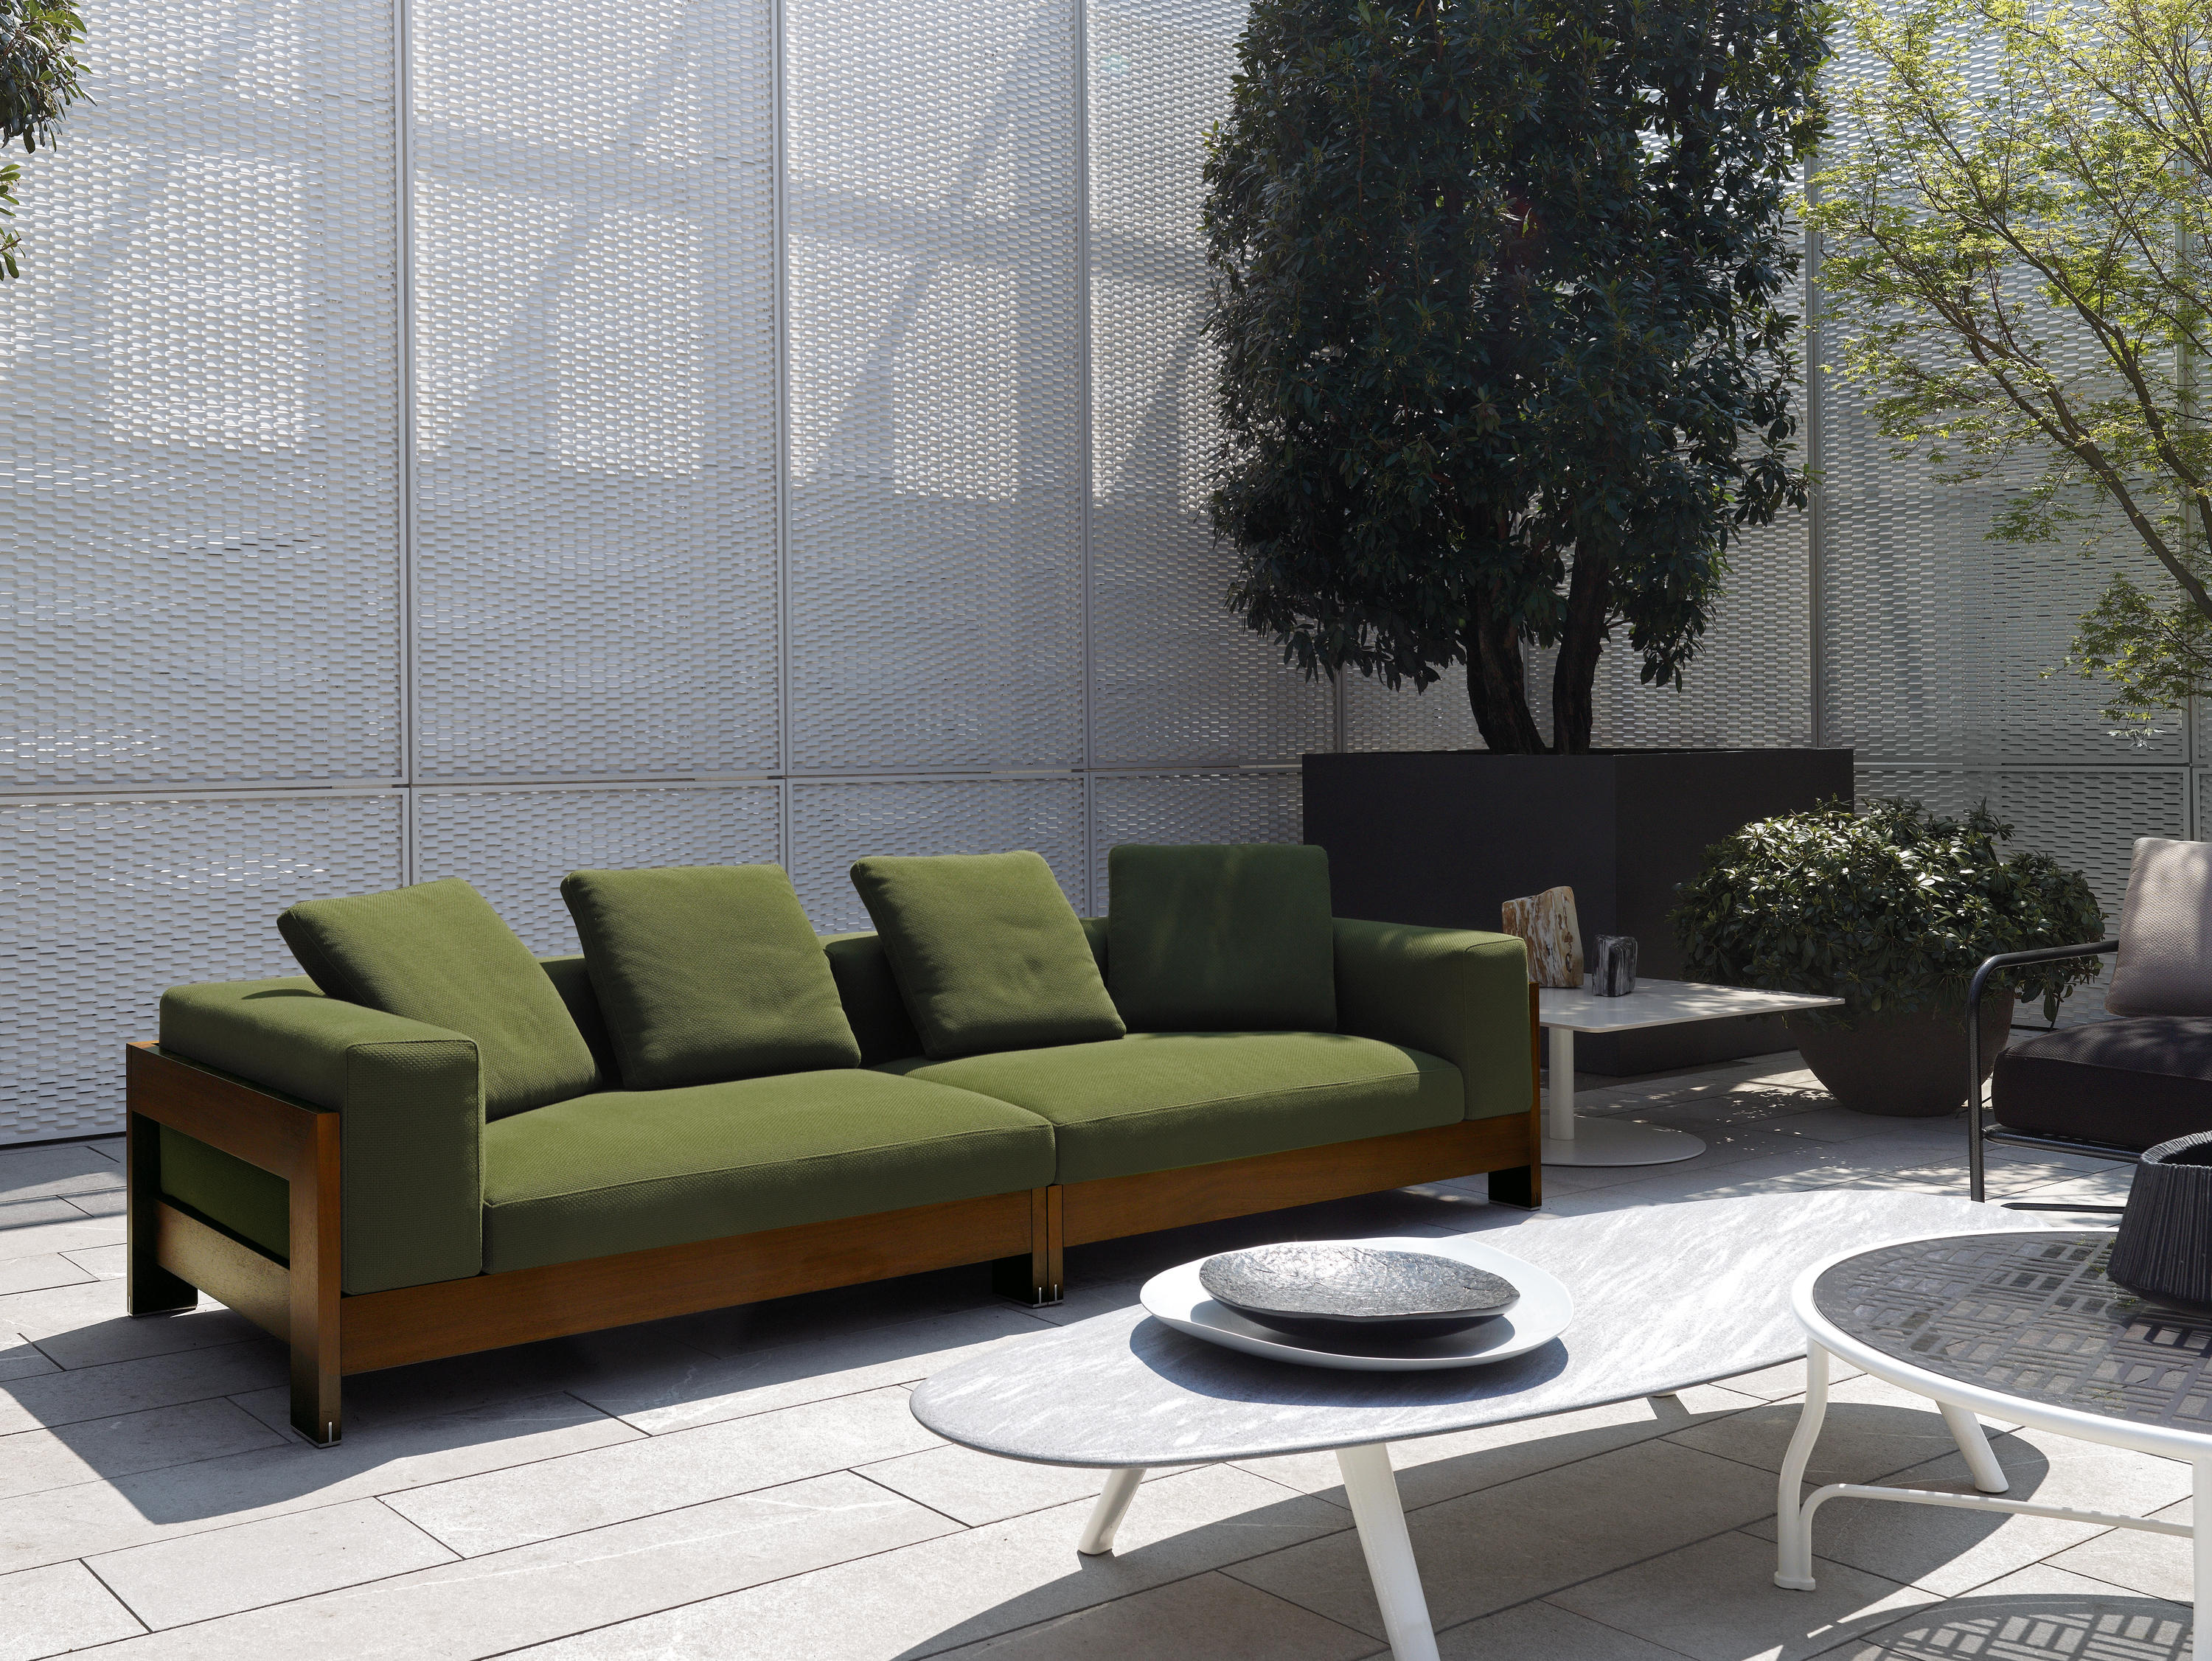 alison dark brown outdoor garden sofas from minotti